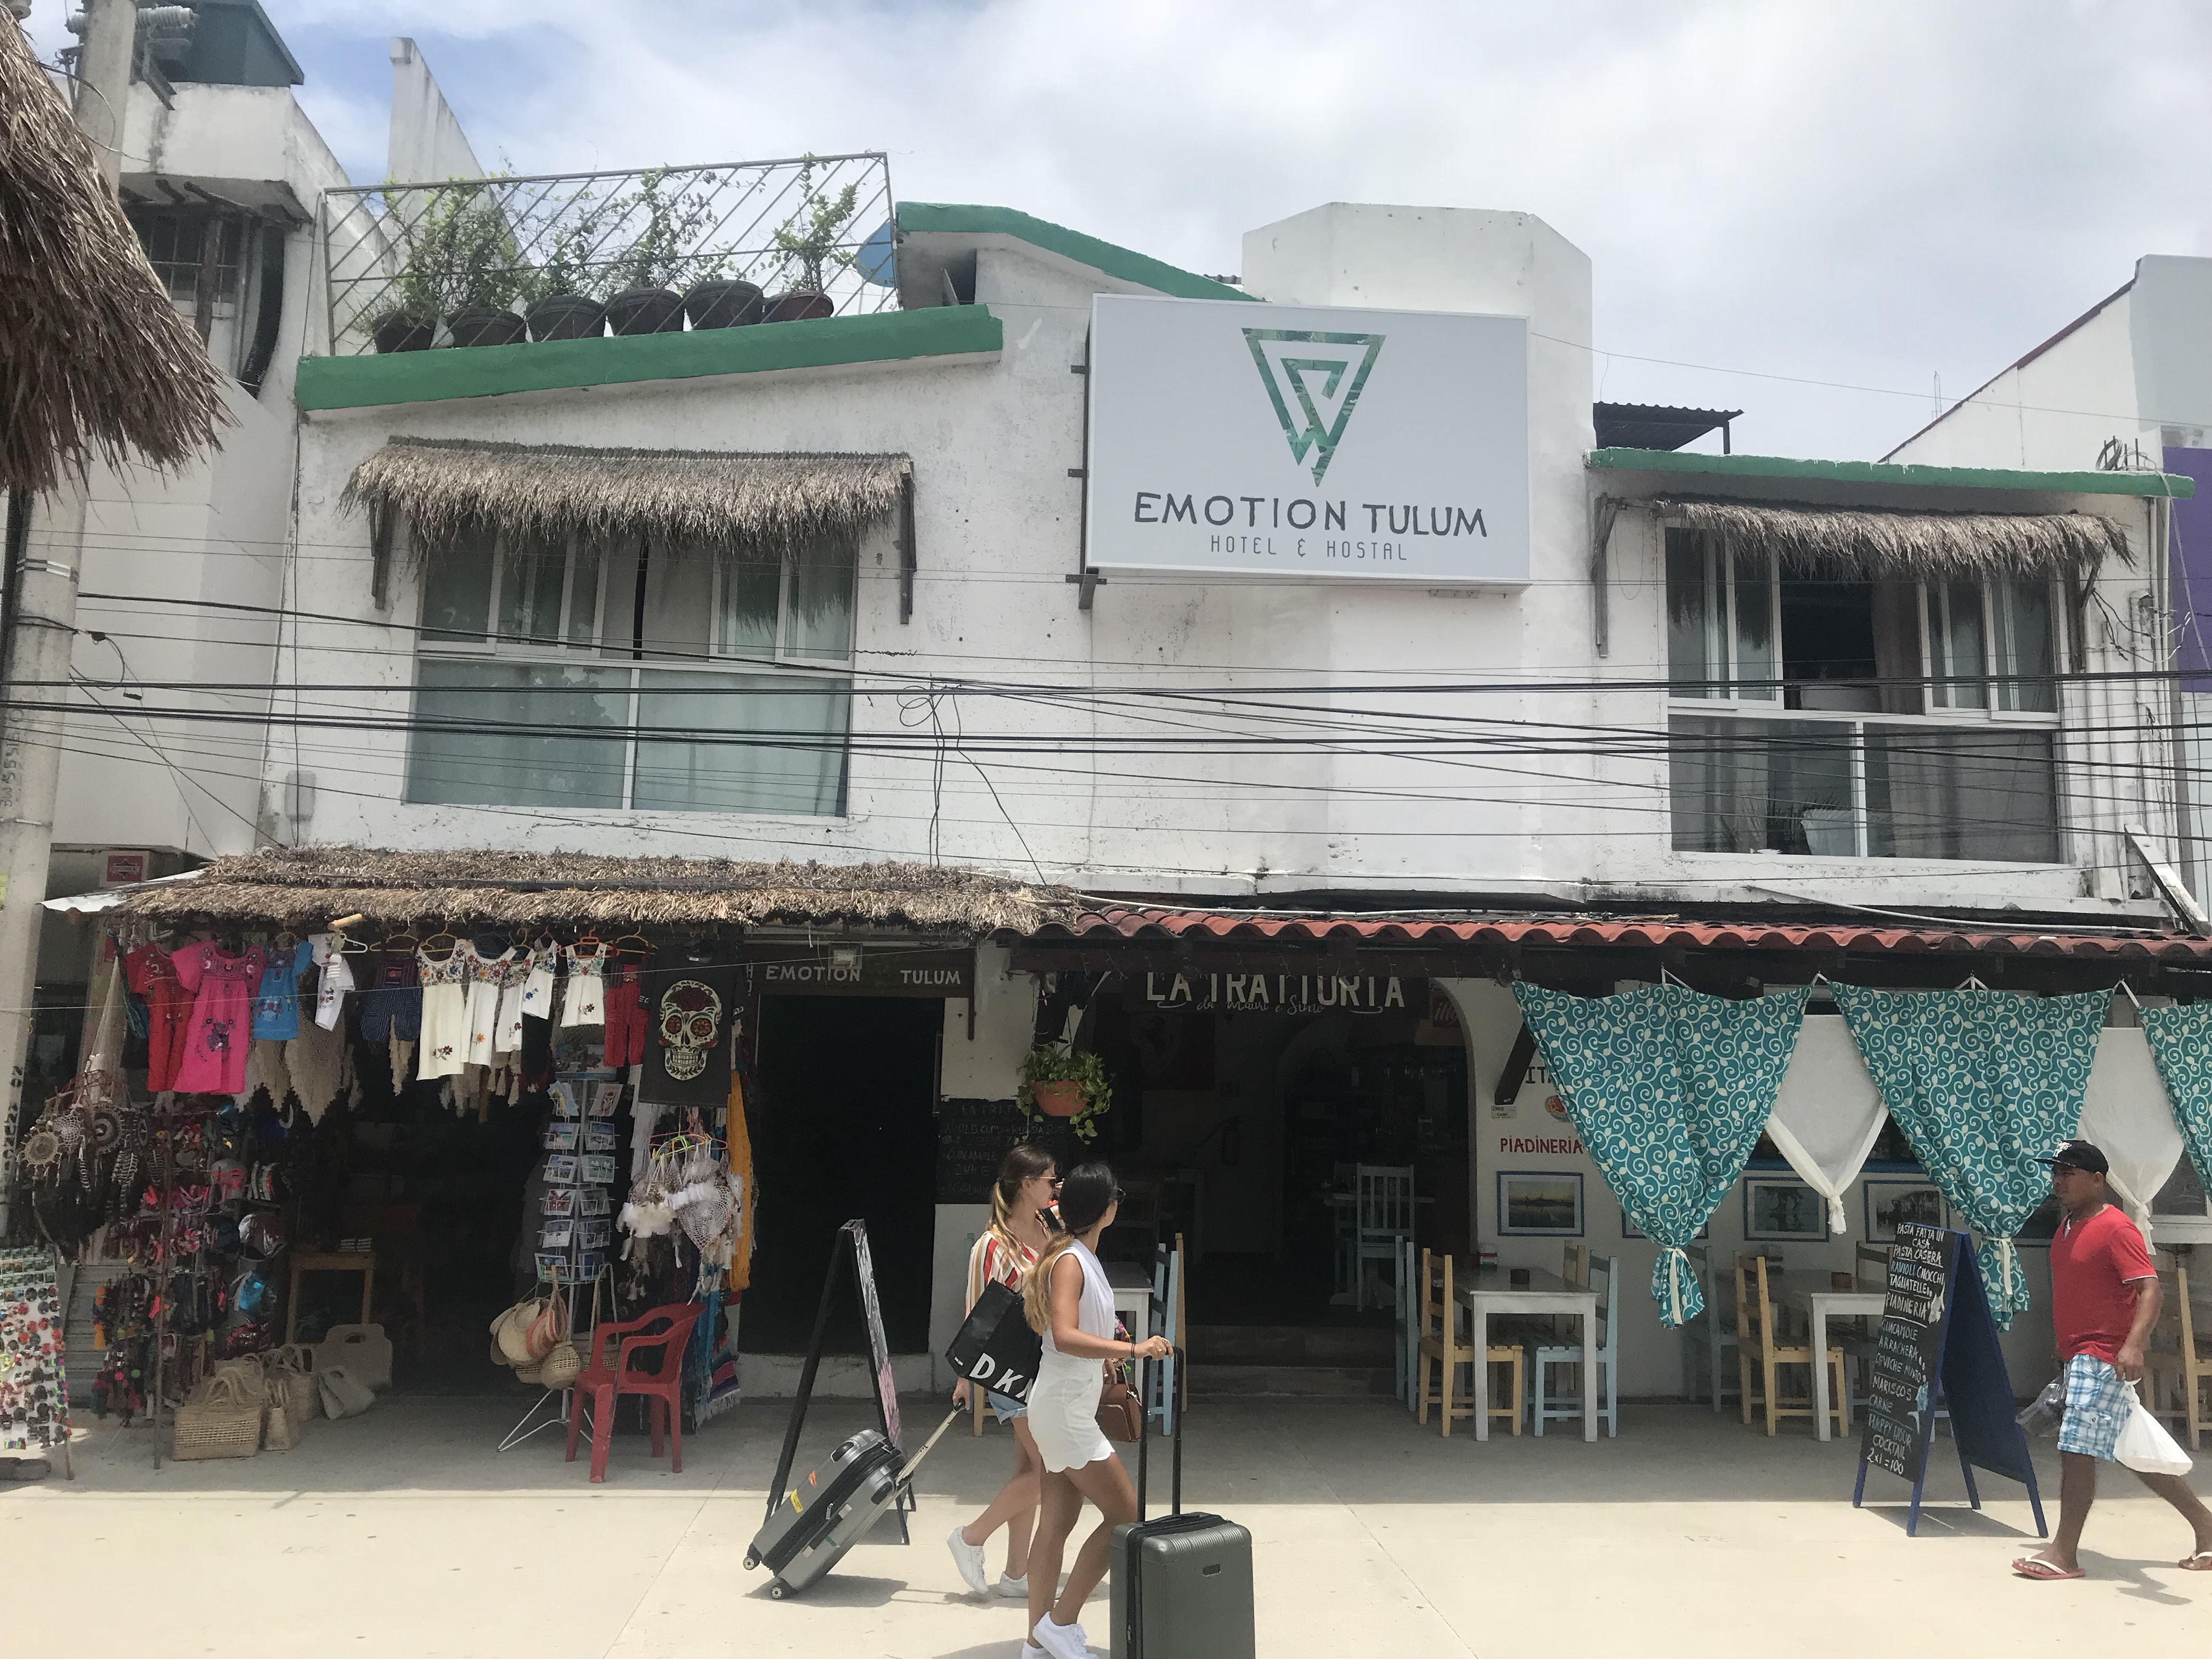 Emotion Tulum Hotel & Hostal